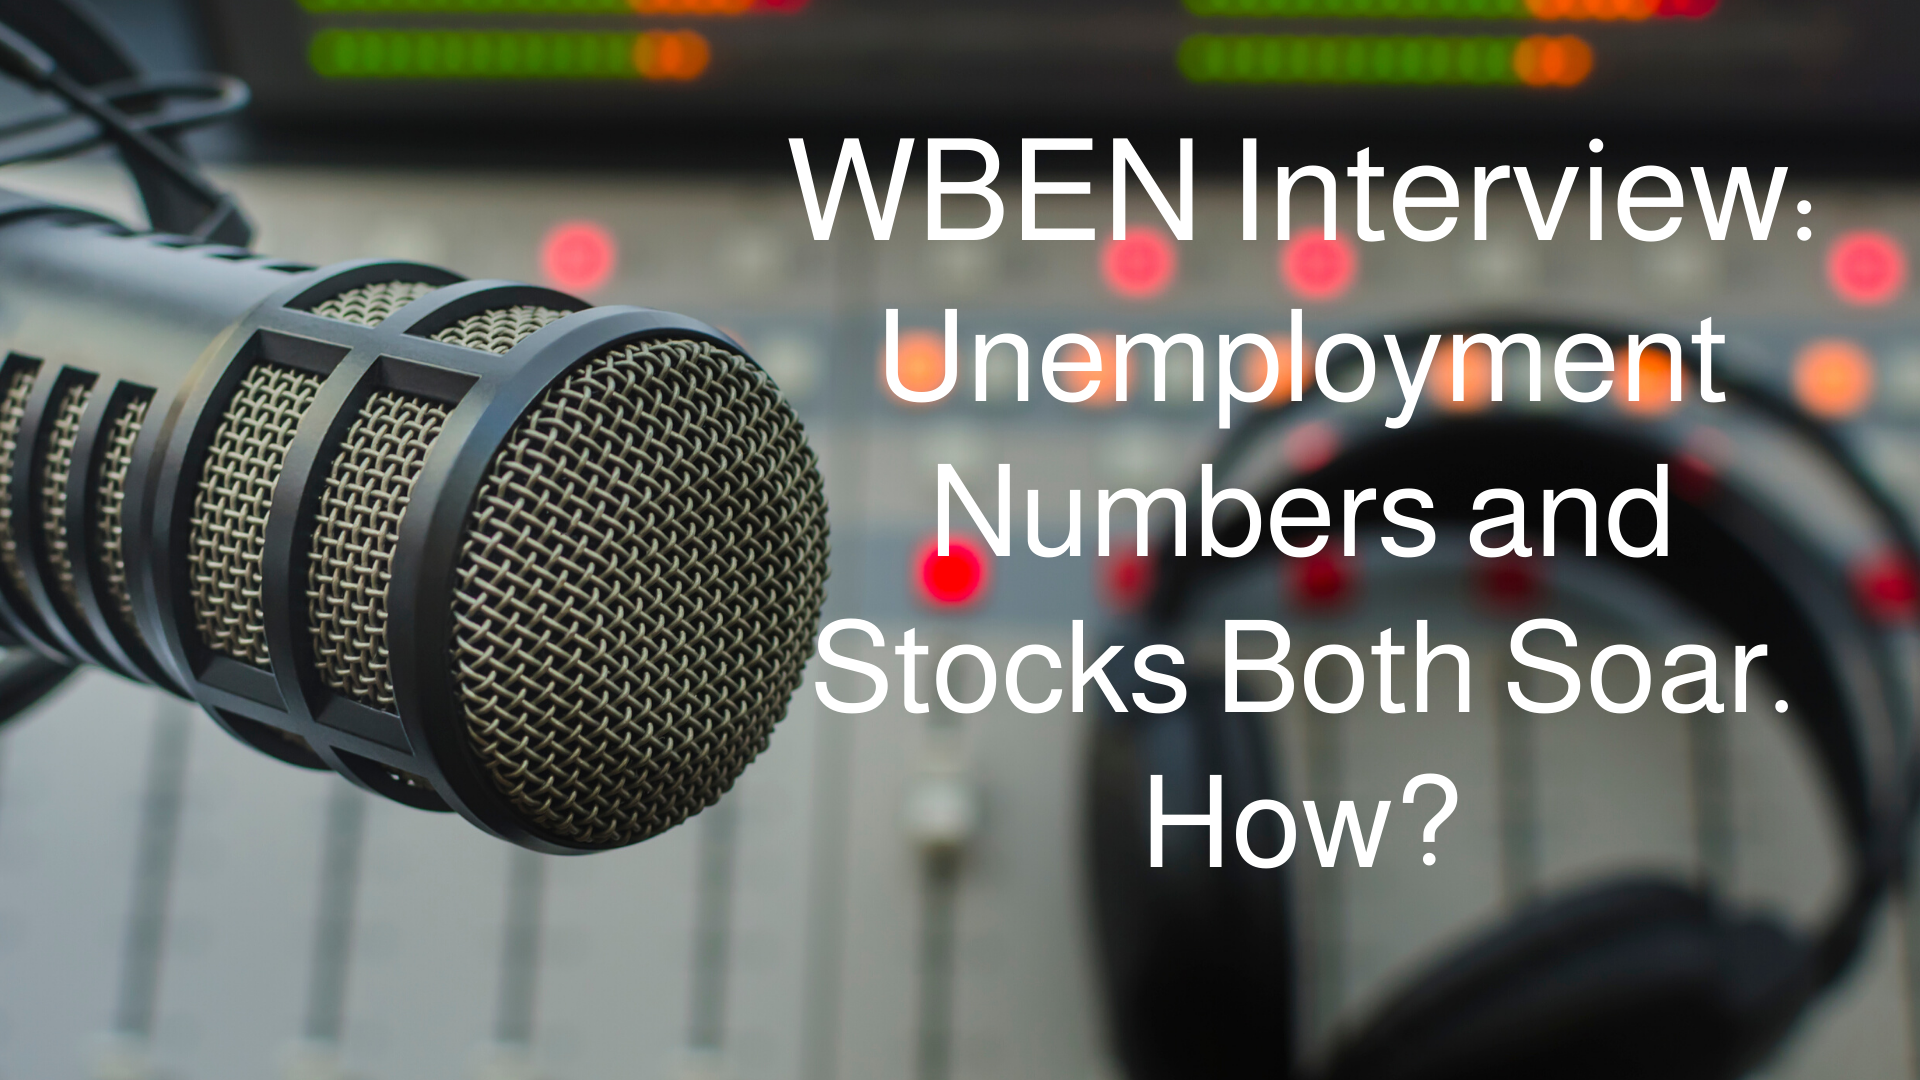 WBEN Interview: Unemployment Numbers and Stocks Both Soar. How?